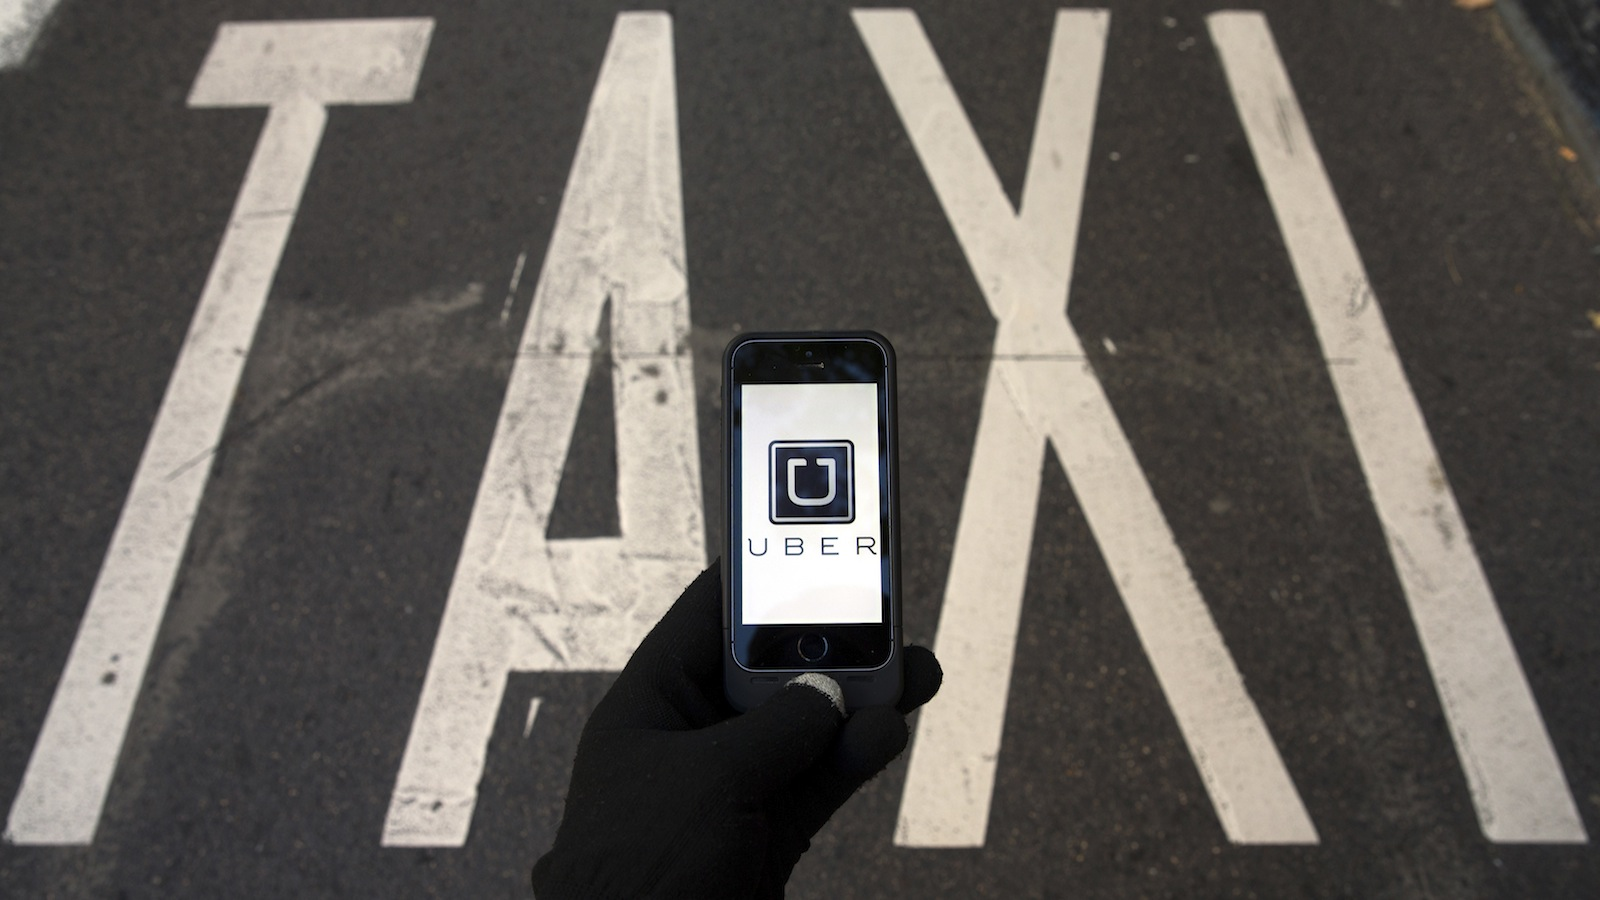 The logo of car-sharing service app Uber on a smartphone over a reserved lane for taxis in a street is seen in this photo illustration taken in Madrid on December 10, 2014. A Madrid judge has ordered U.S.-based online car booking company Uber to cease operations in Spain, the latest ban on the popular service. Taxi drivers around the world consider Uber unfairly bypasses local licensing and safety regulations by using the internet to put drivers in touch with passengers. REUTERS/Sergio Perez